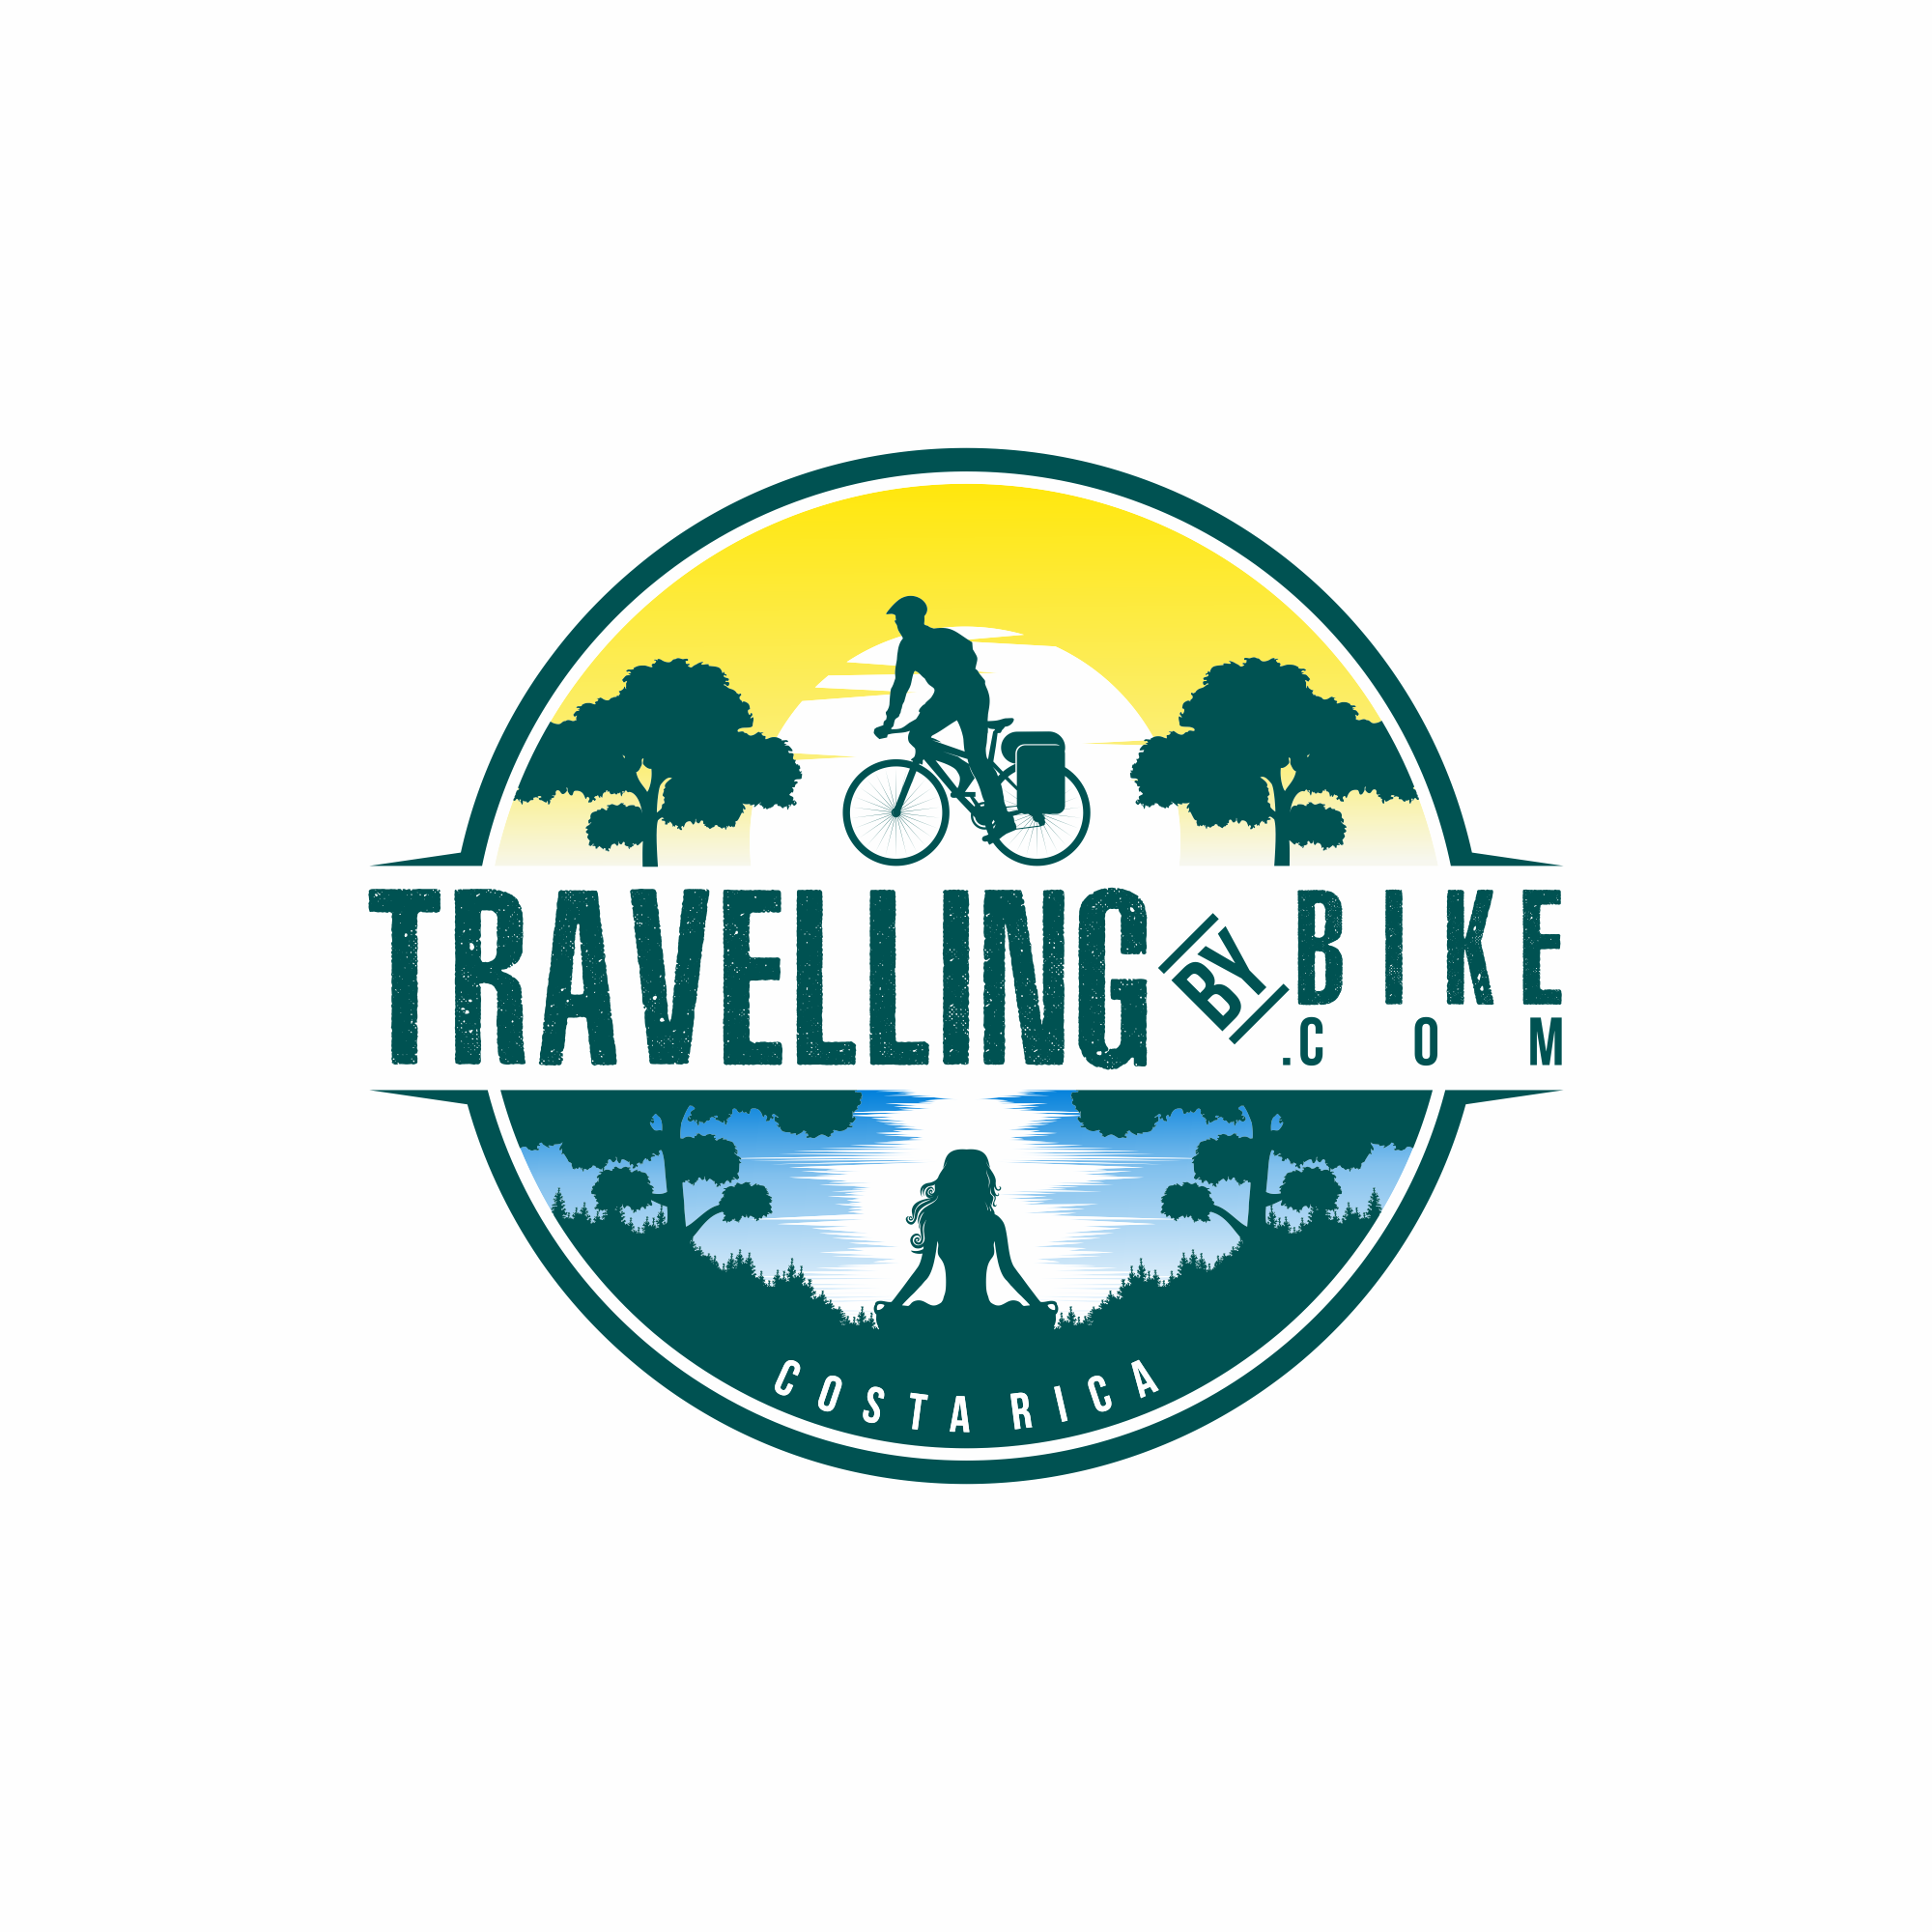 PACK YOUR BAGS!!! We're biking across Costa Rica!!